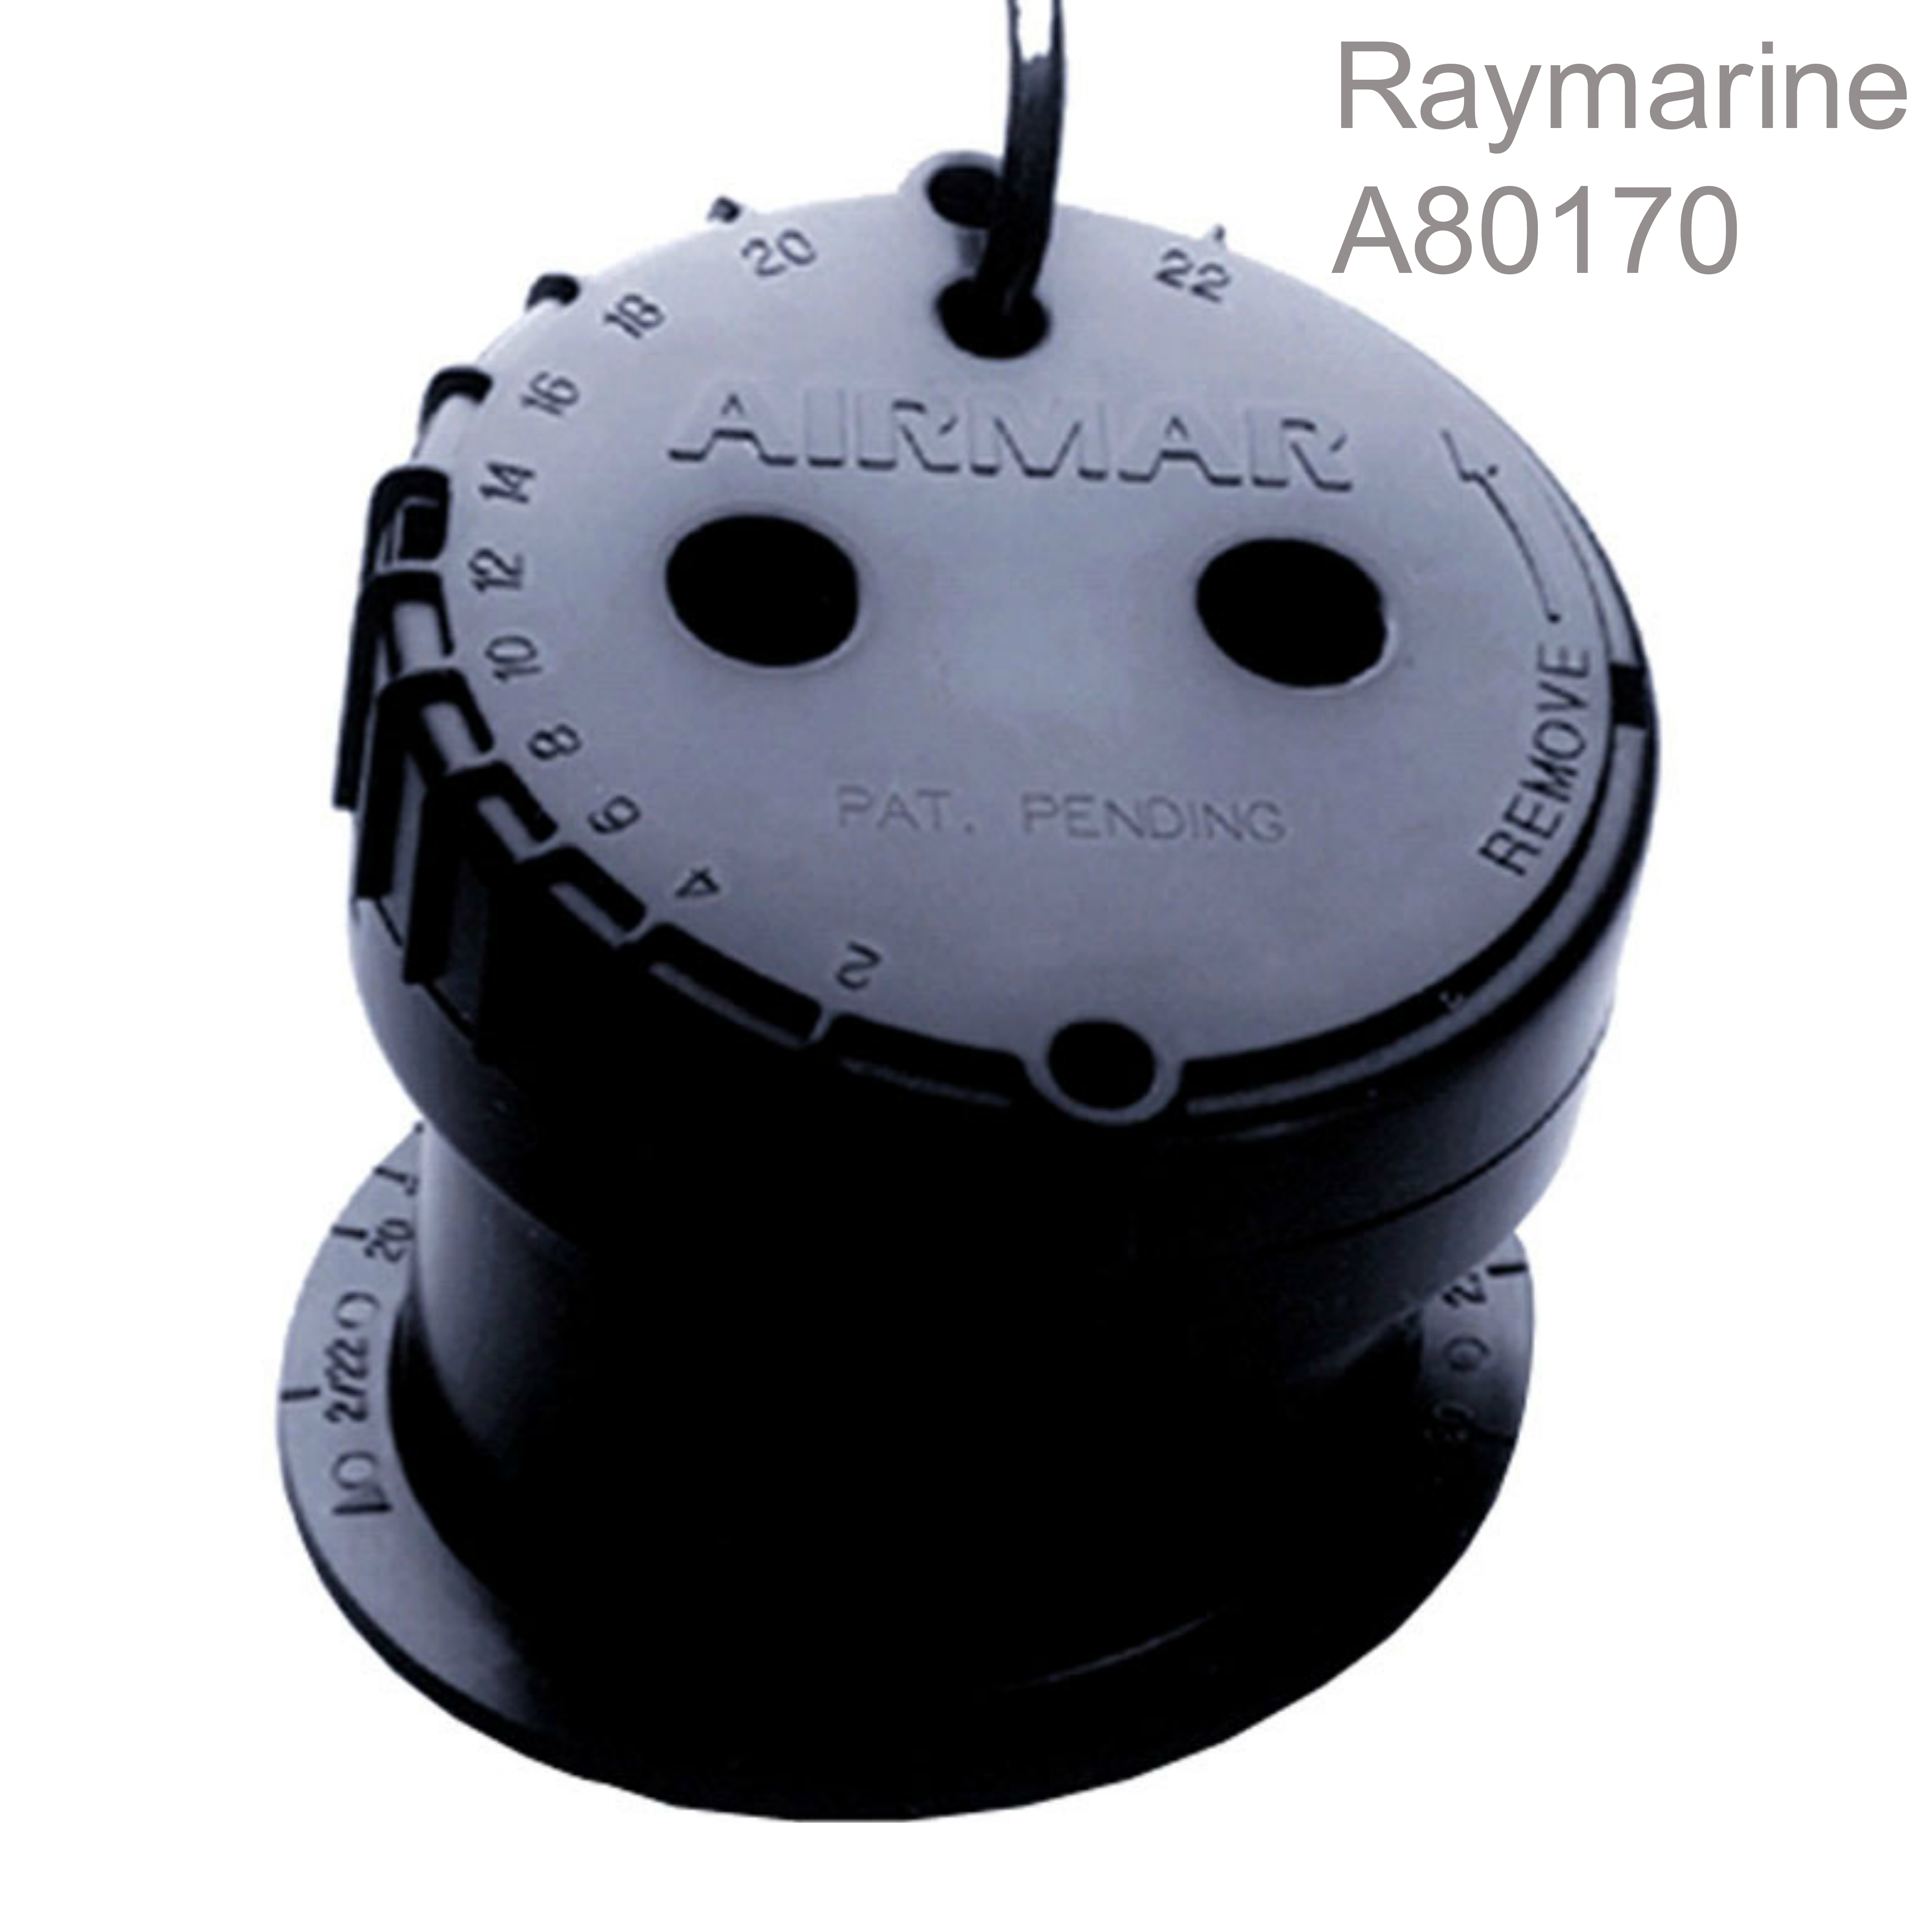 Raymarine-A80170|P79 In Hull Depth MFD Transducer|22°Angle|9.1m Cable|50/200 KHZ